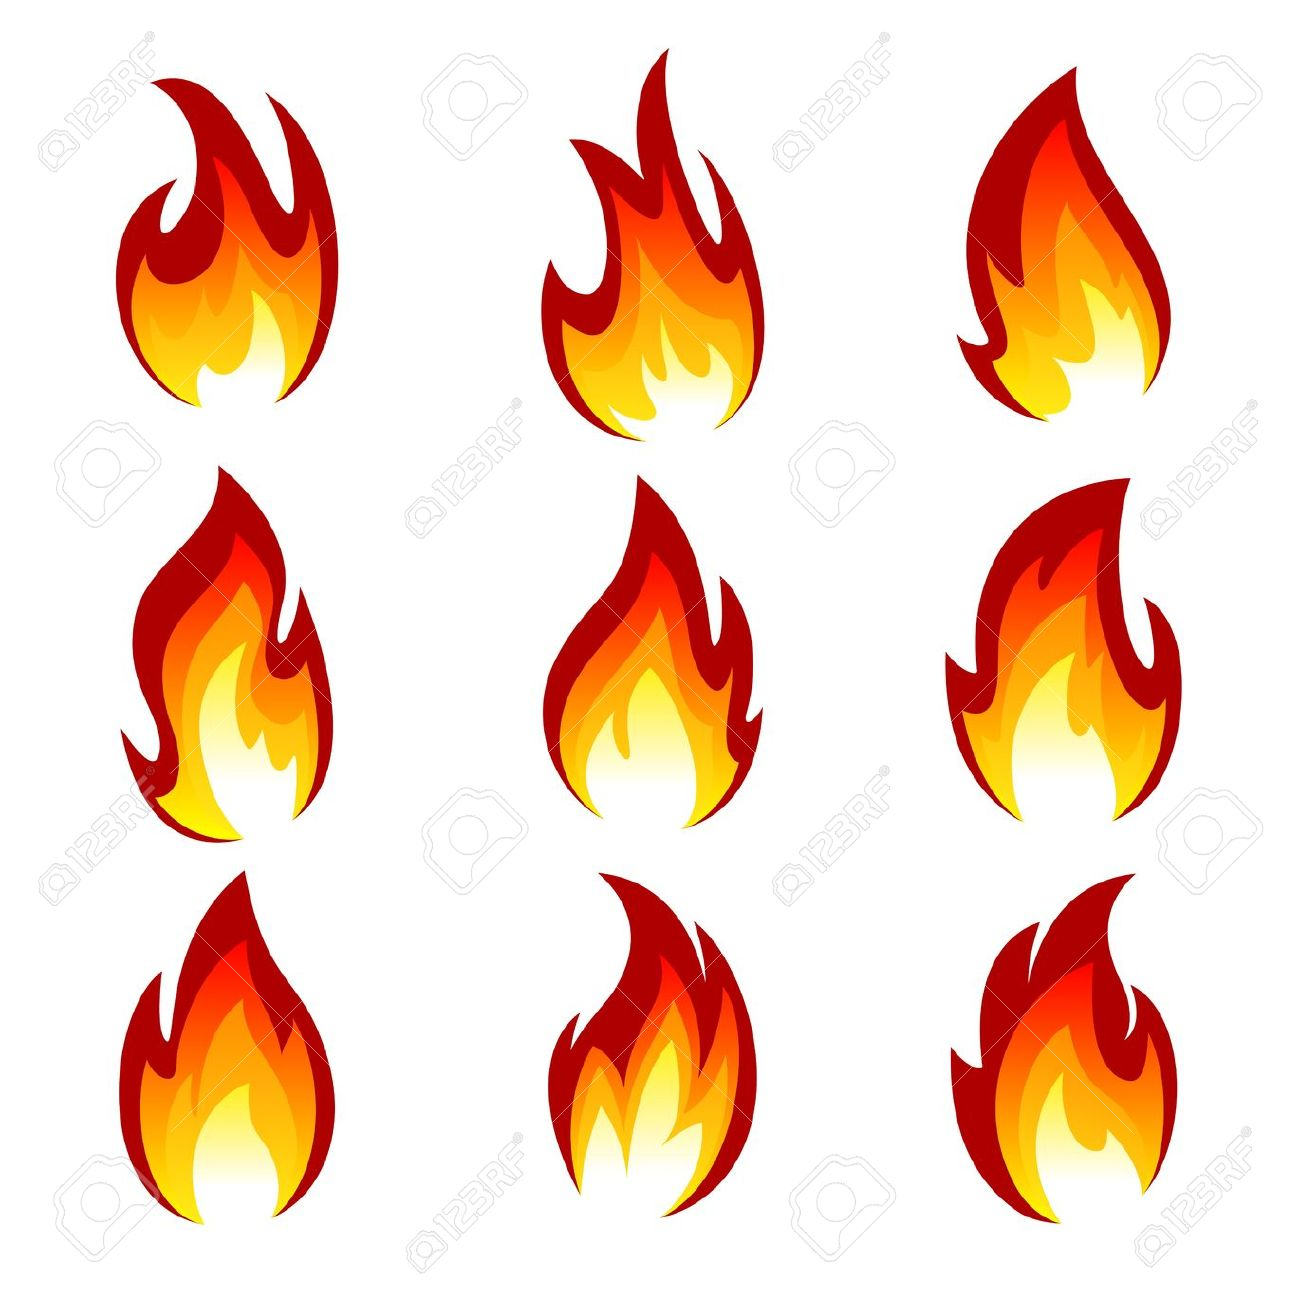 Clipart flames of fire.